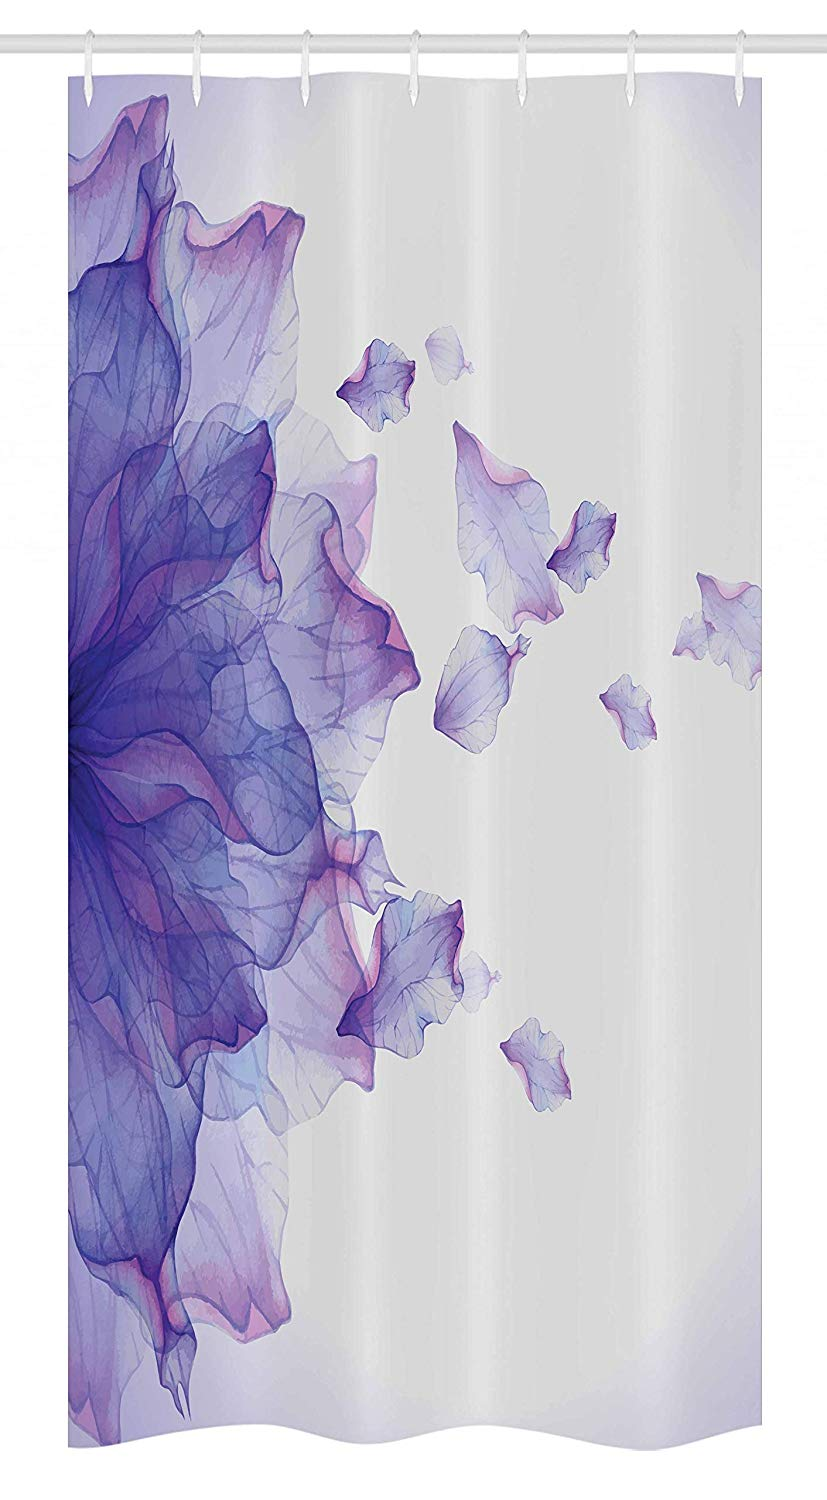 Ambesonne Flower Stall Shower Curtain, Abstract Themed Modern Futuristic Image with Water Like Colored Artwork Print, Fabric Bathroom Decor Set with Hooks, 36